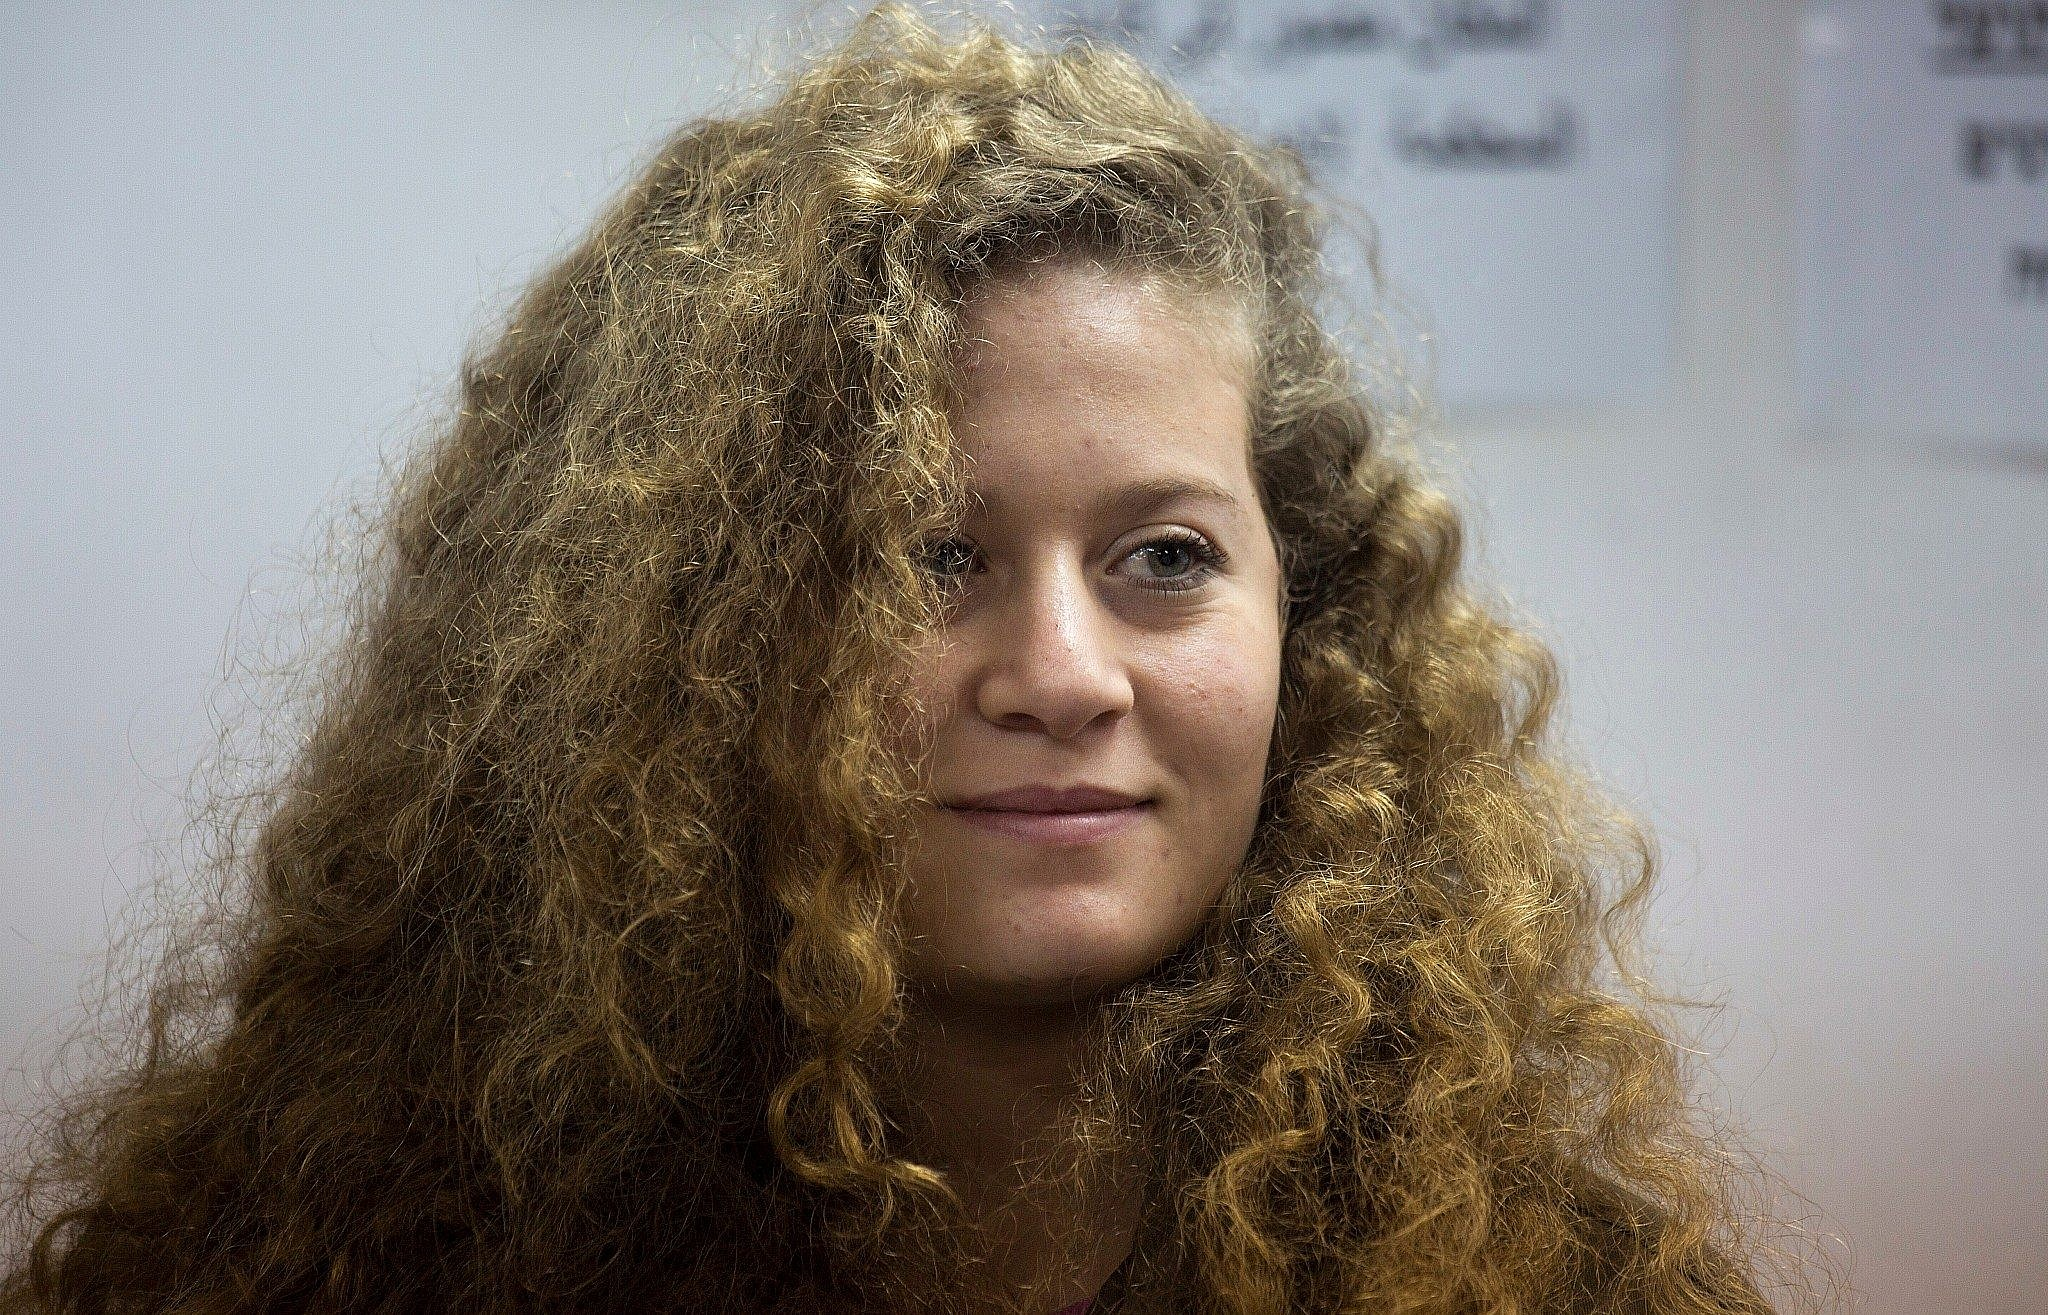 Palestinian protest icon goes from jail cell to VIP suite | The